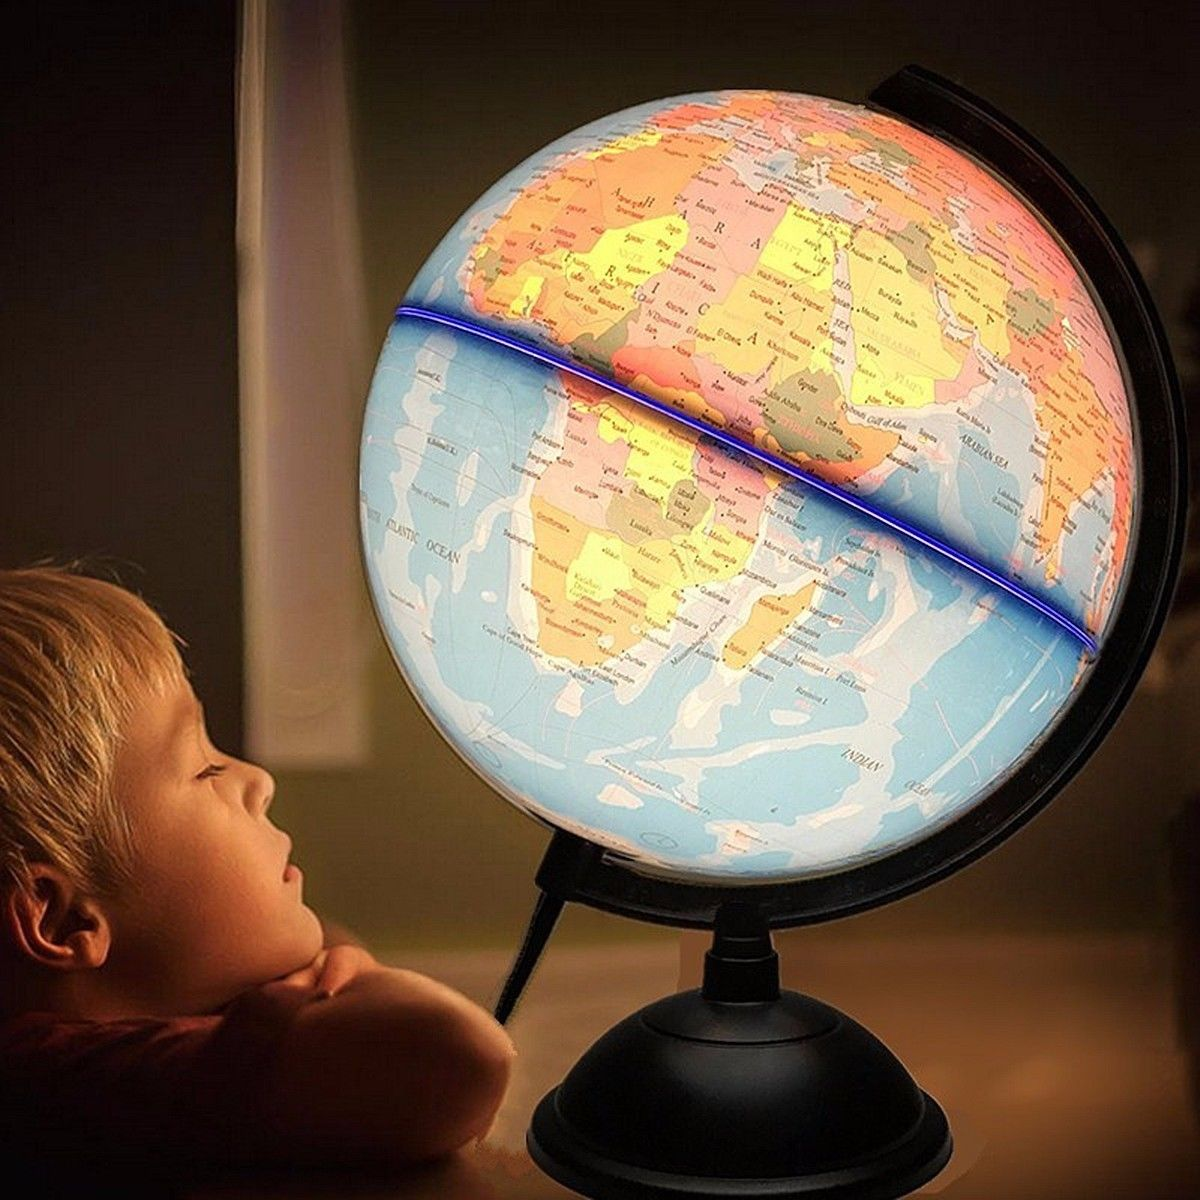 32cm Electric LED Light World Globe Earth Map Teach Education Geography Toy Terrestrial Tellurion Globe home Office Desk Decor new led world map world globe rotating swivel map of earth geography globe figurines ornaments birthday gift home office decor